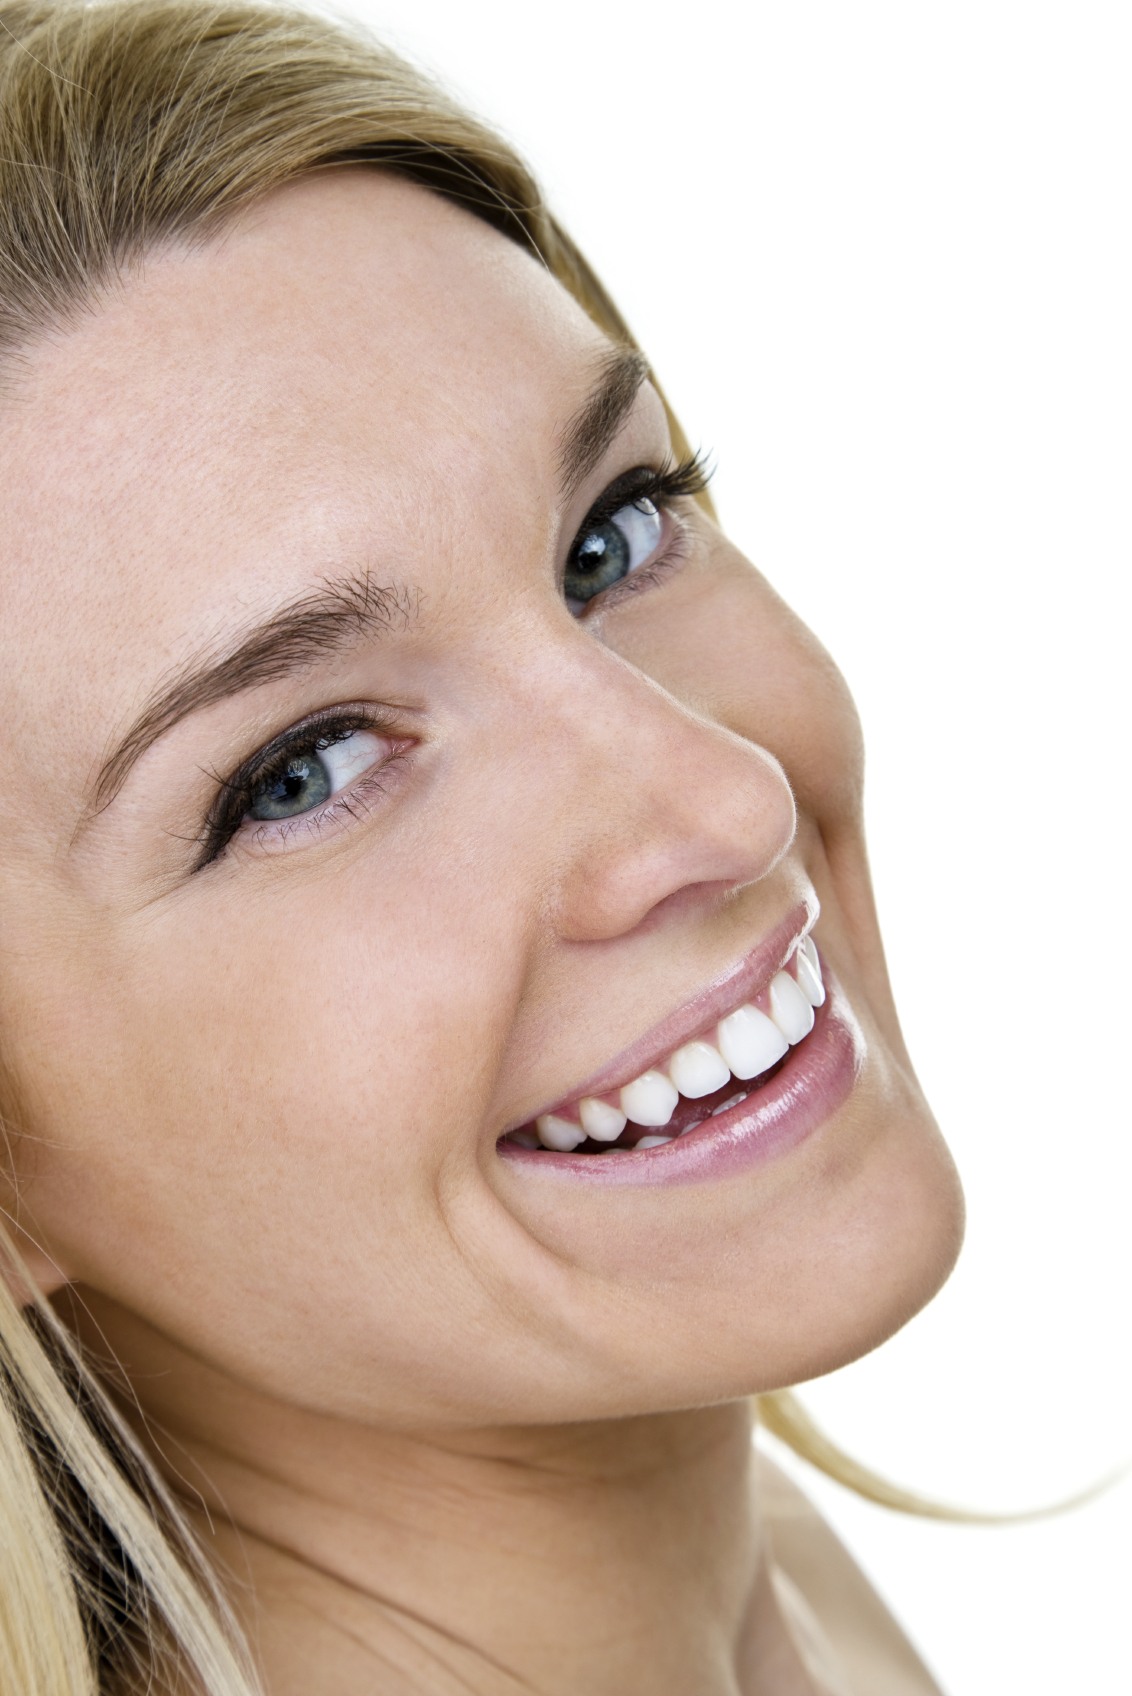 Home Teeth Whitening in Leicester from only £200!